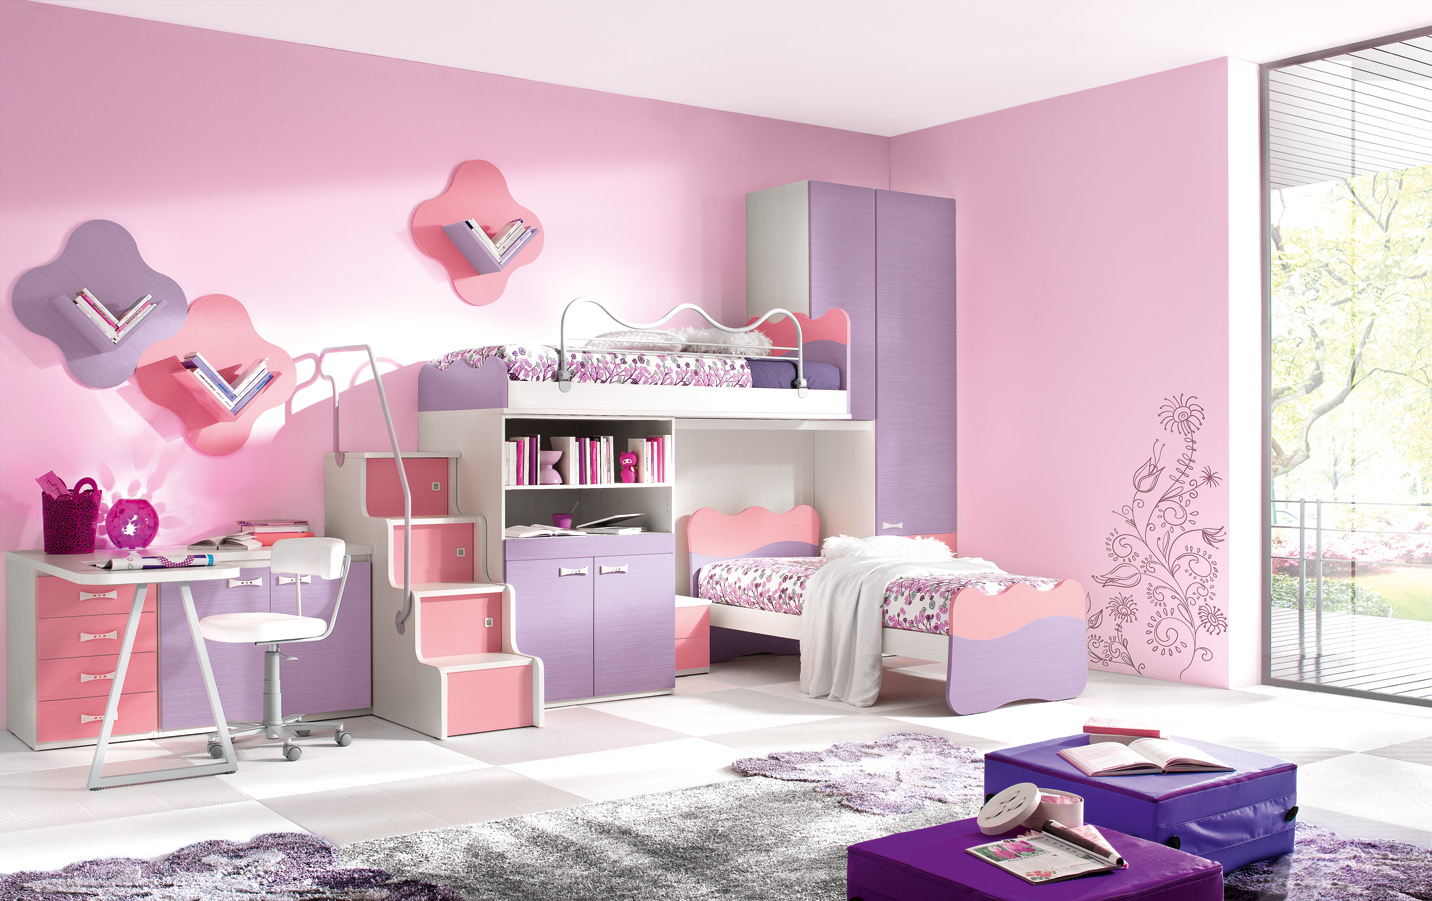 Delightful Modern Kids Bedroom with Bunk Beds